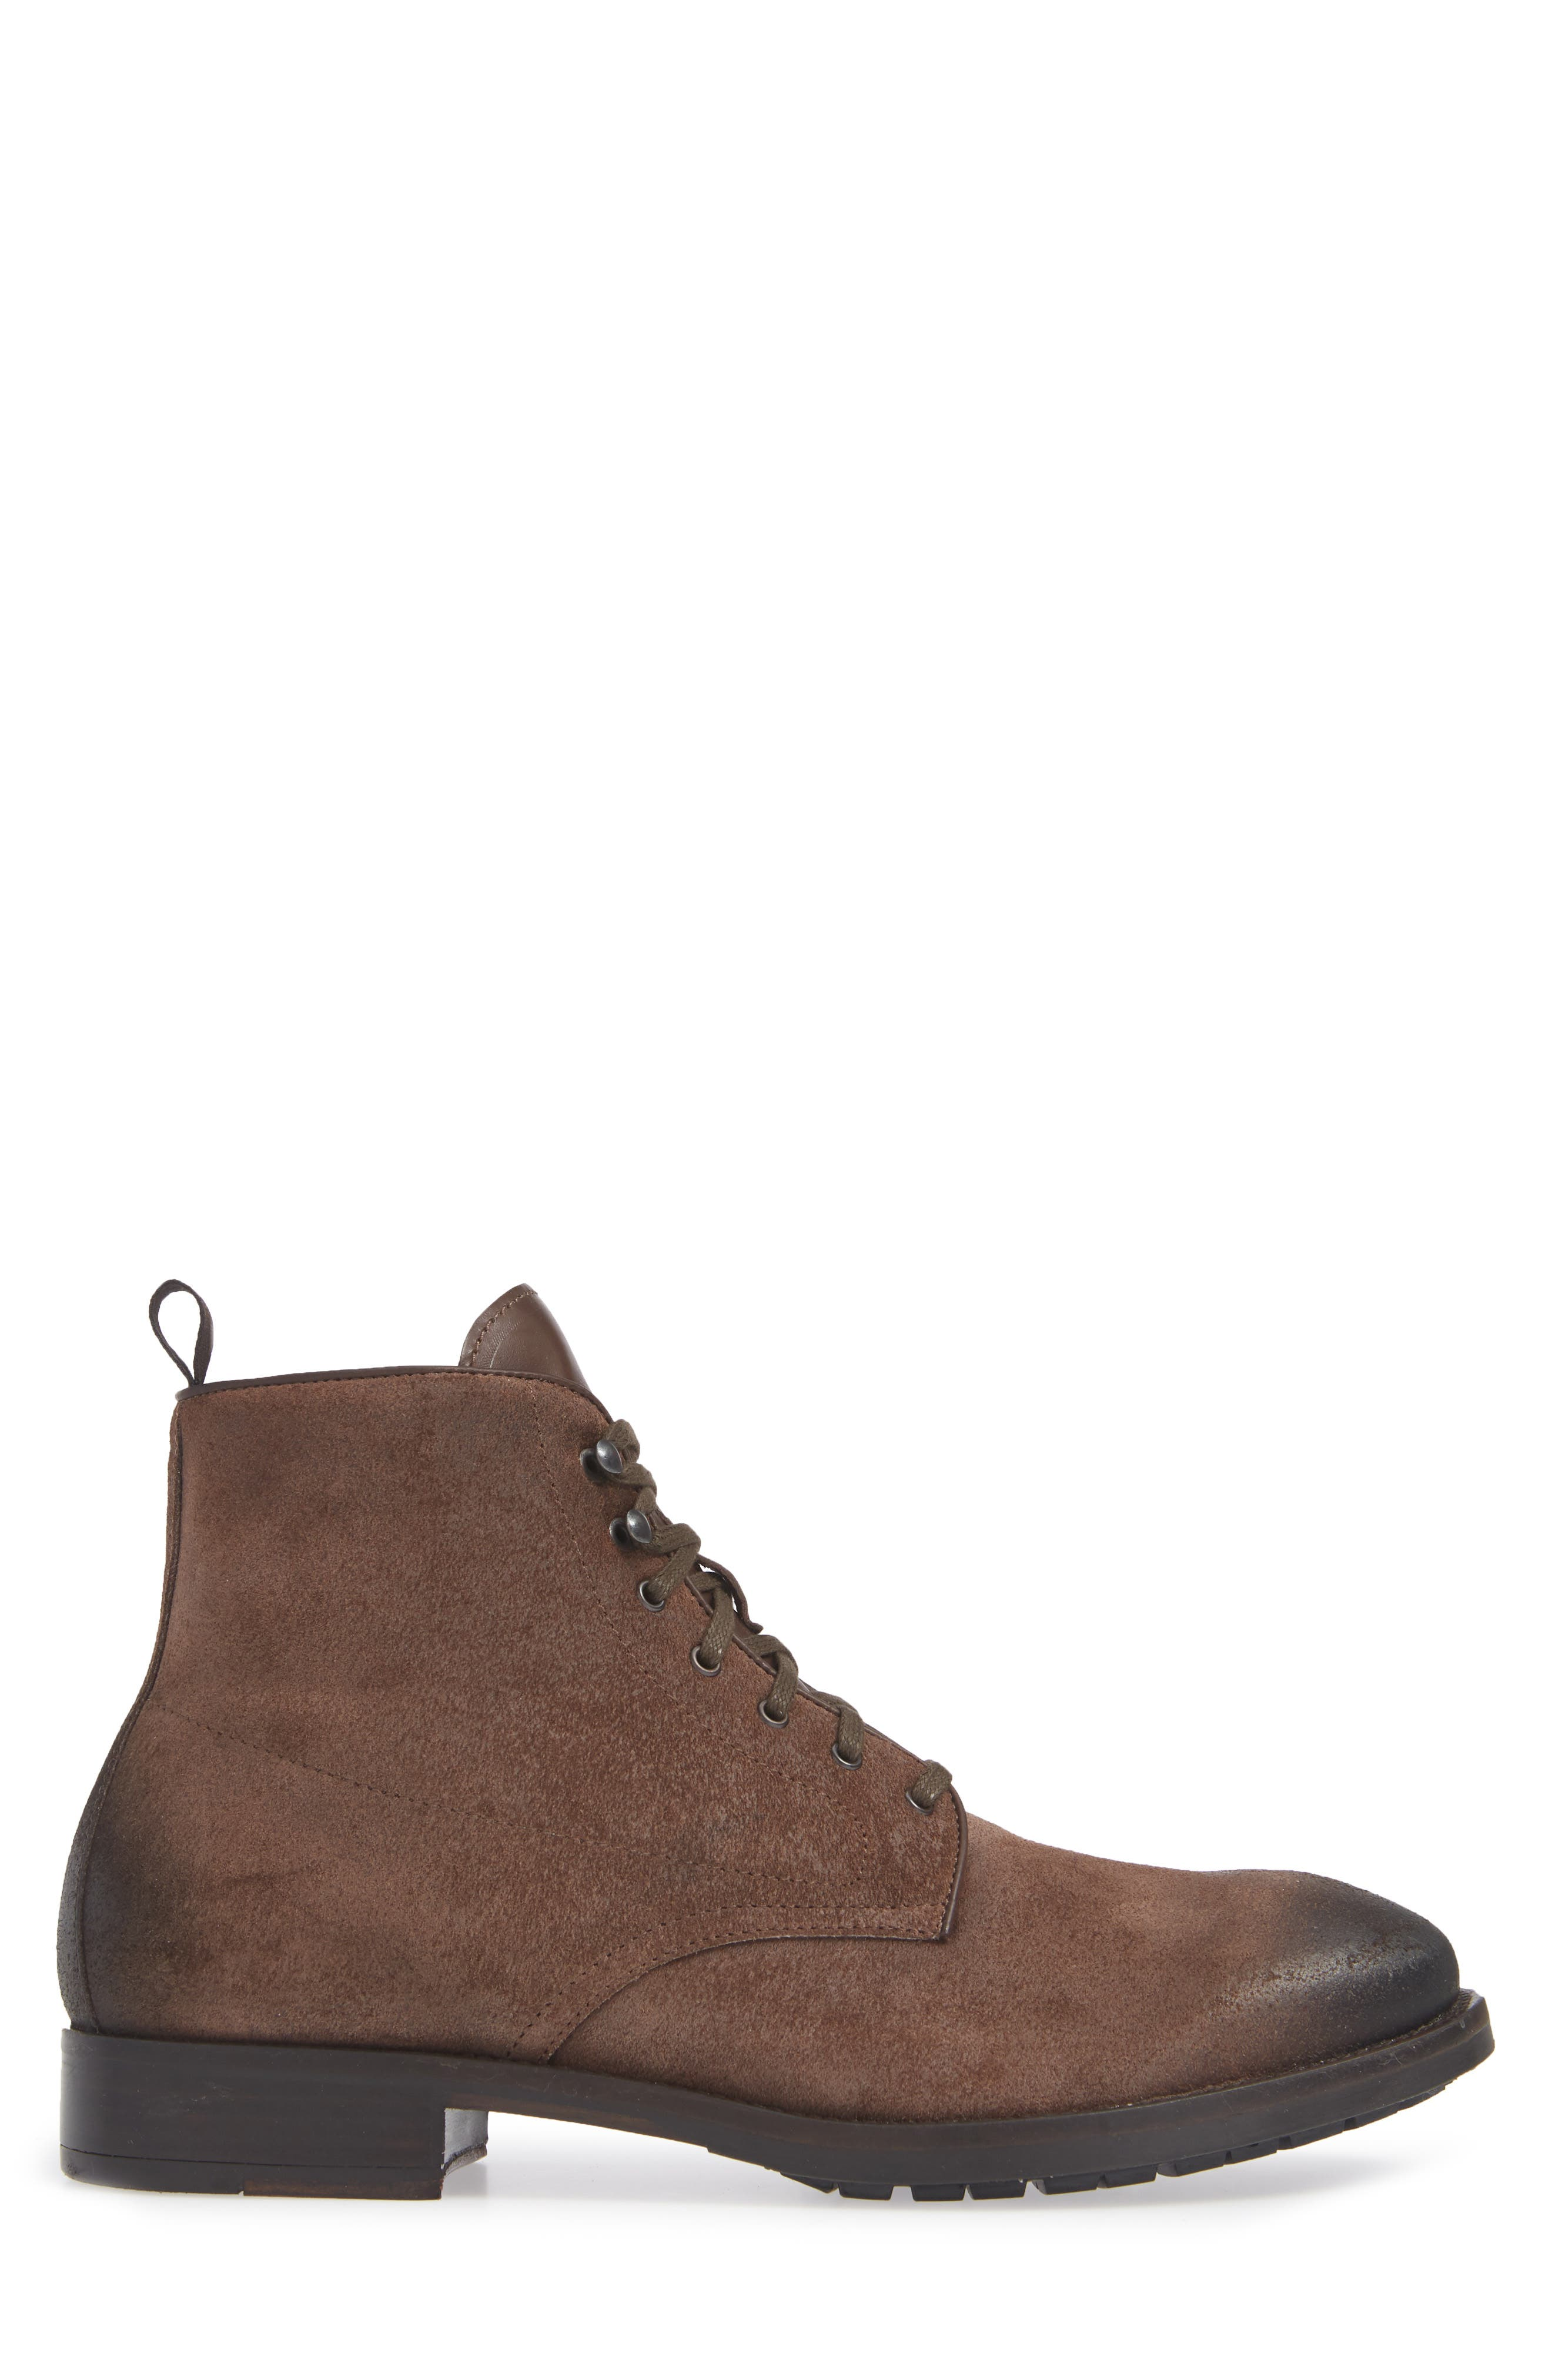 Athens Plain Toe Boot,                             Alternate thumbnail 3, color,                             TMORO SUEDE/ LEATHER